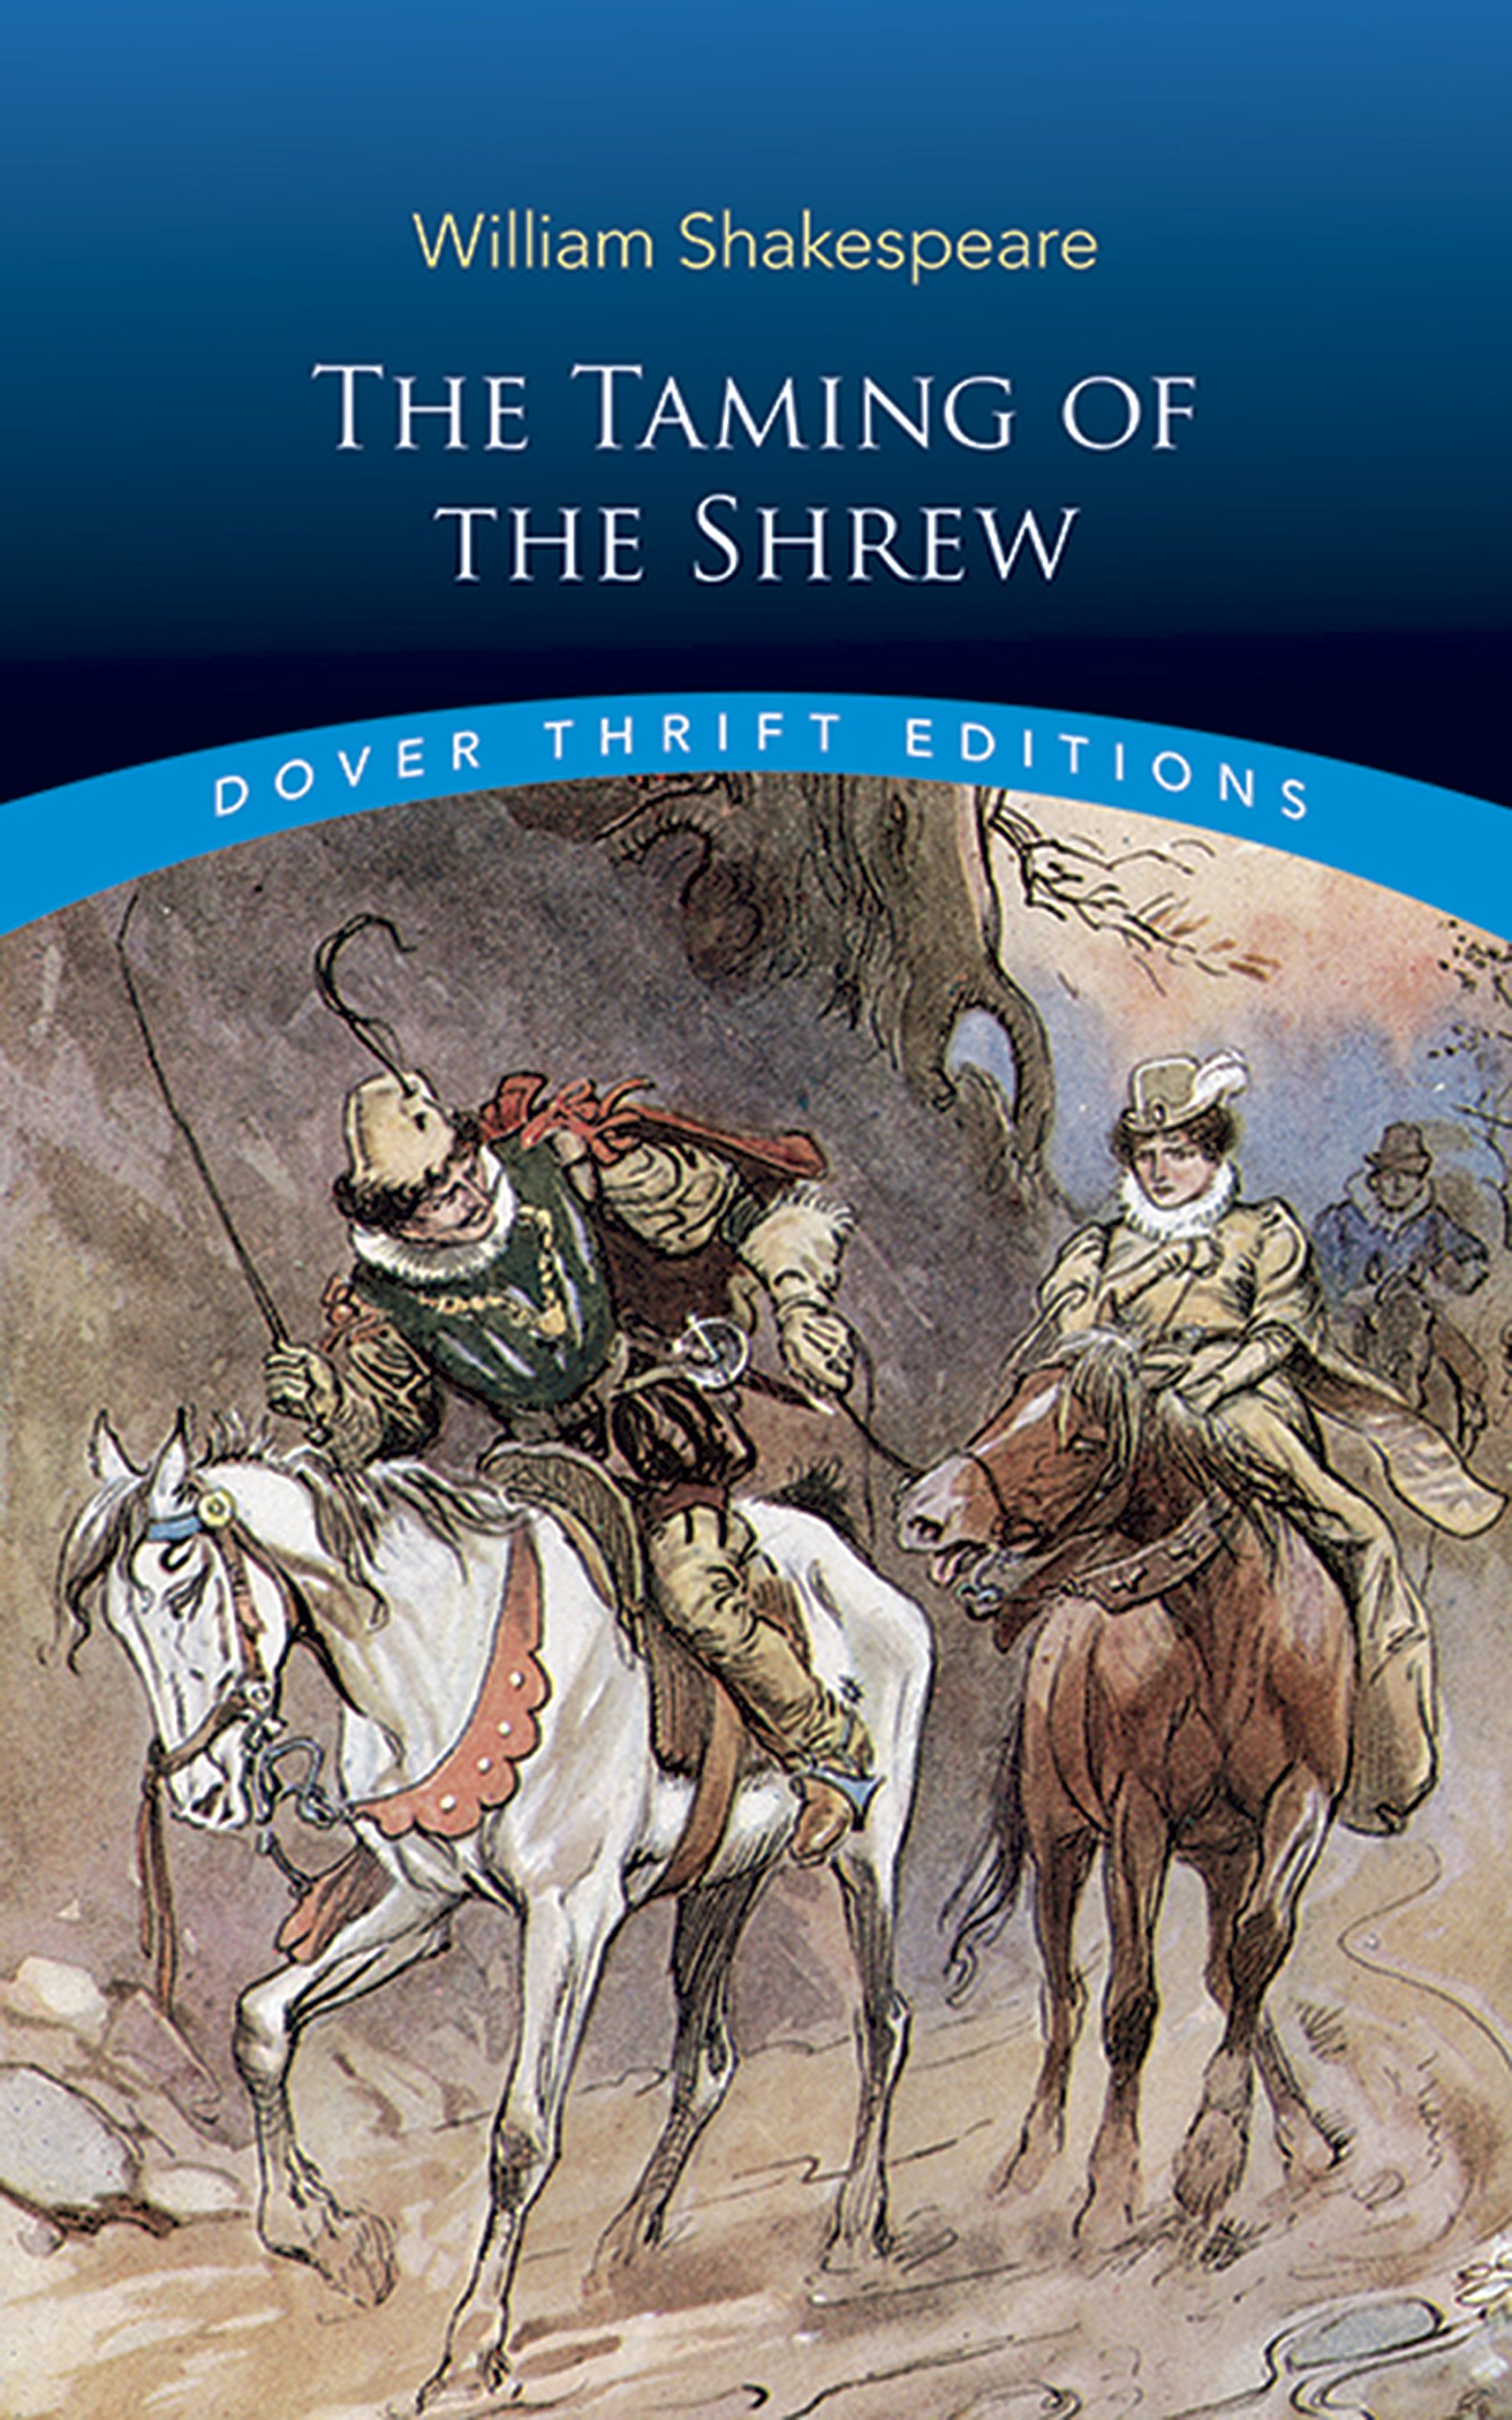 College Vs High School Essay Compare And Contrast Amazoncom The Taming Of The Shrew Dover Thrift Editions   William Shakespeare Books Essay Vs Paper also Short Essays In English Amazoncom The Taming Of The Shrew Dover Thrift Editions  Writing A High School Essay